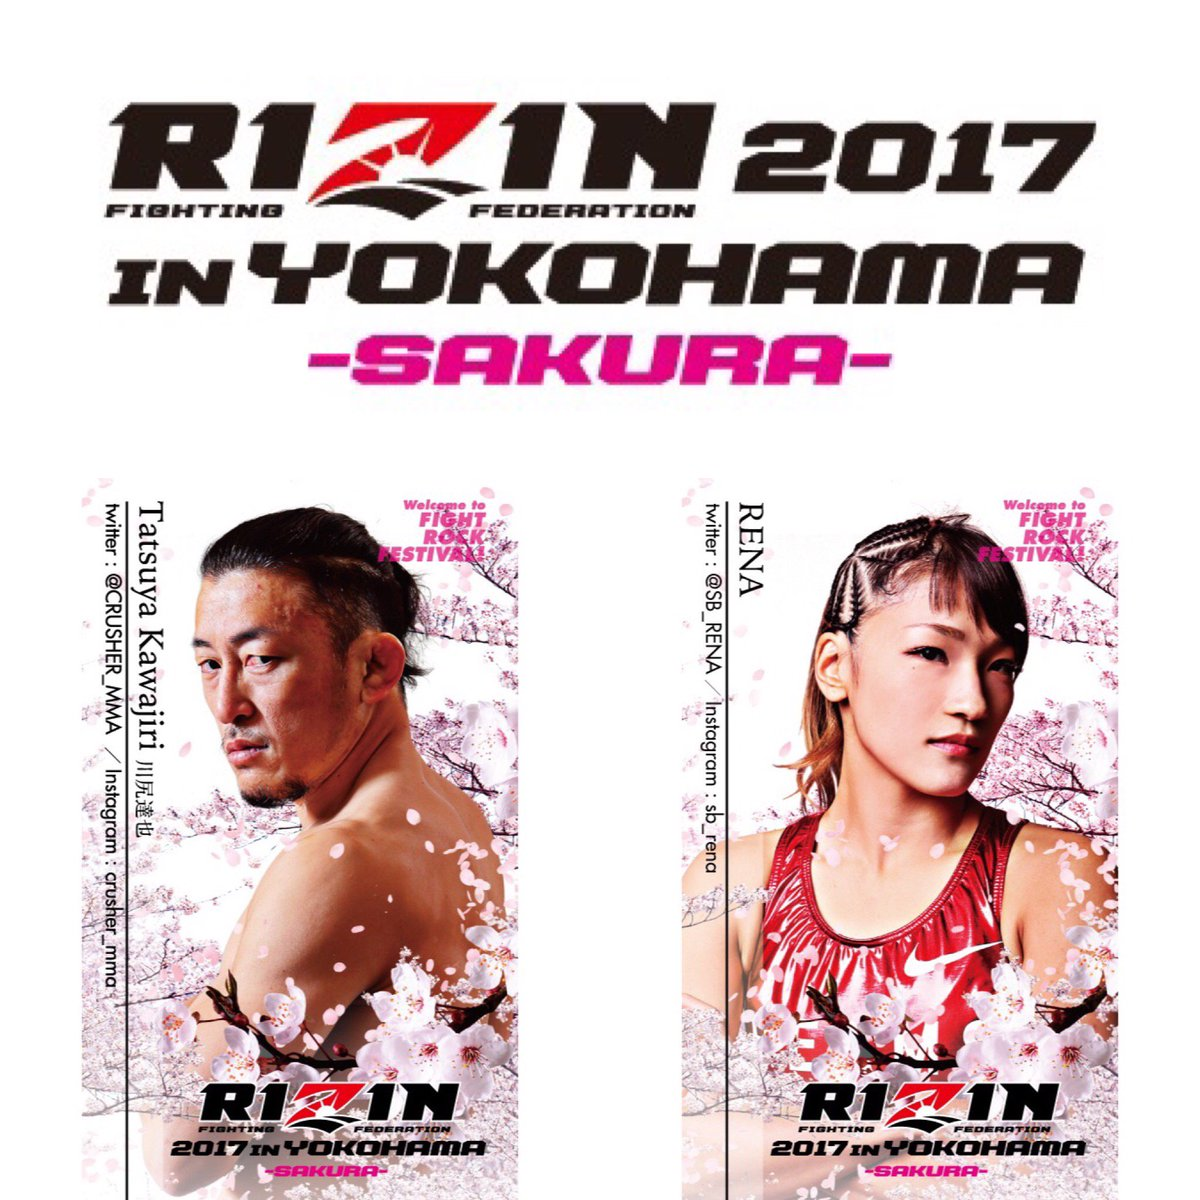 RIZIN FF OFFICIAL on Twitter: